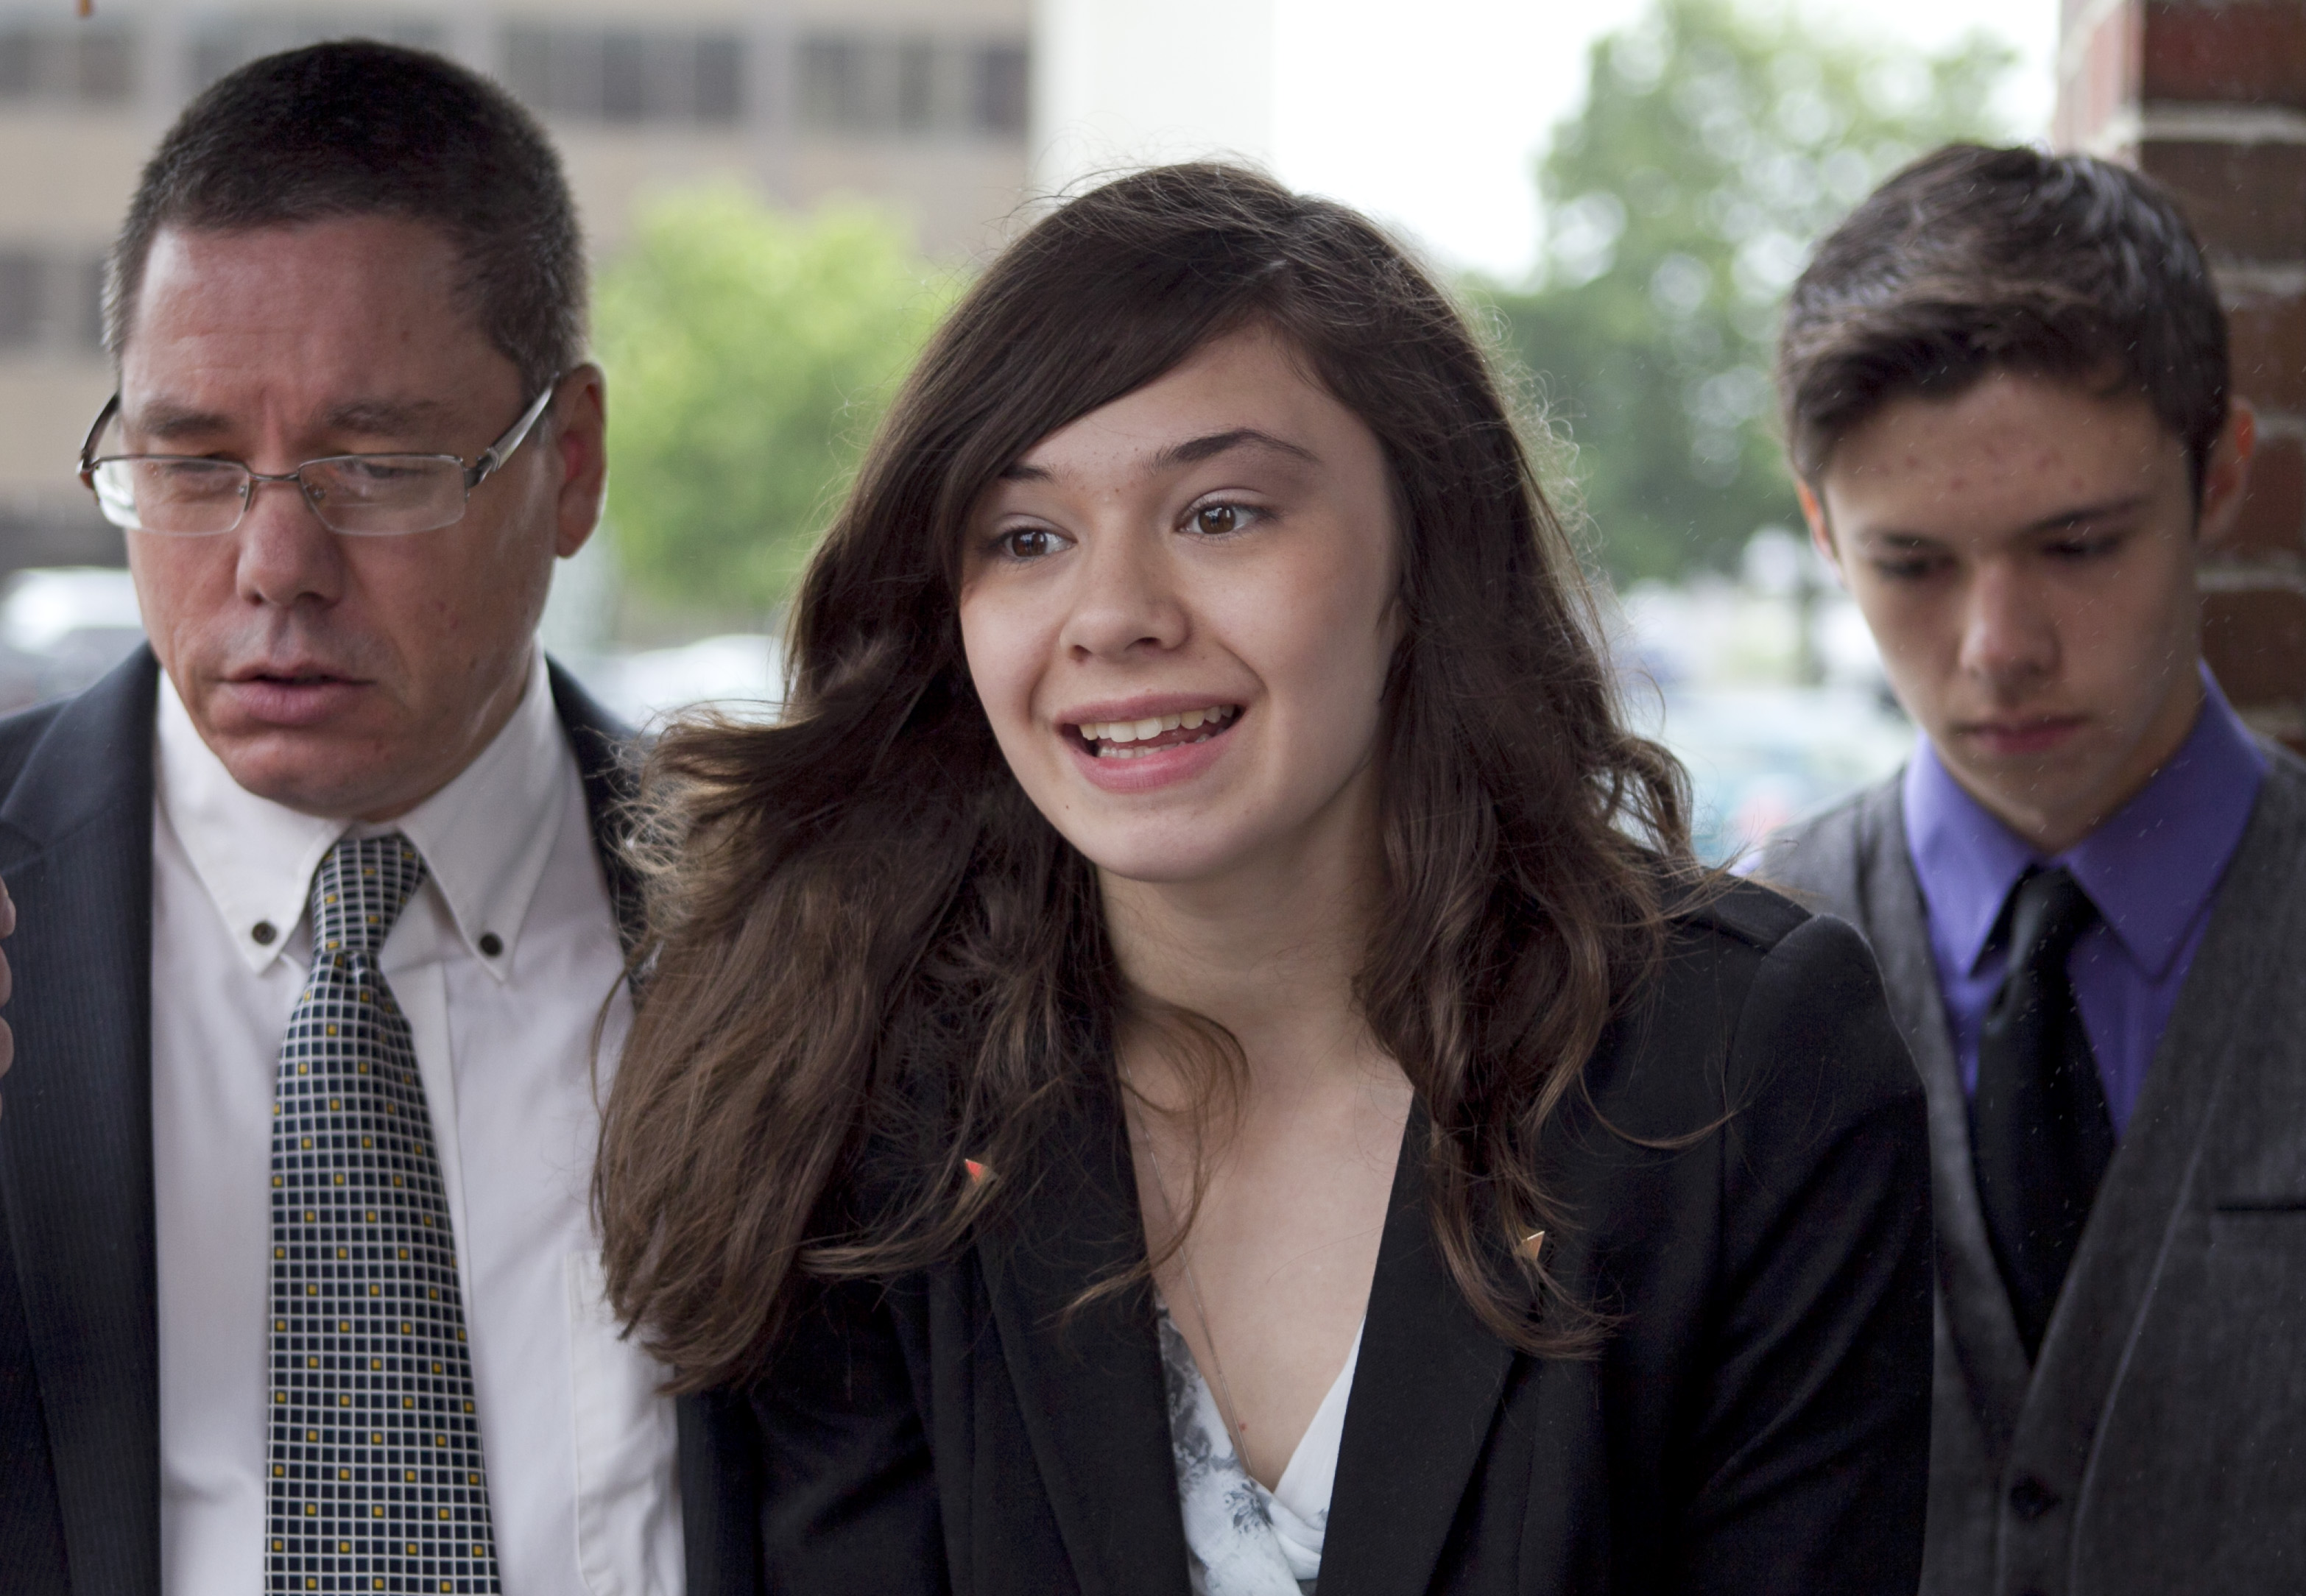 Transgender student Nicole Maines, center, speaks to reporters as her father Wayne Maines, left, and brother Jonas, look on outside the Penobscot Judicial Center in Bangor, Maine, on June 12, 2013.